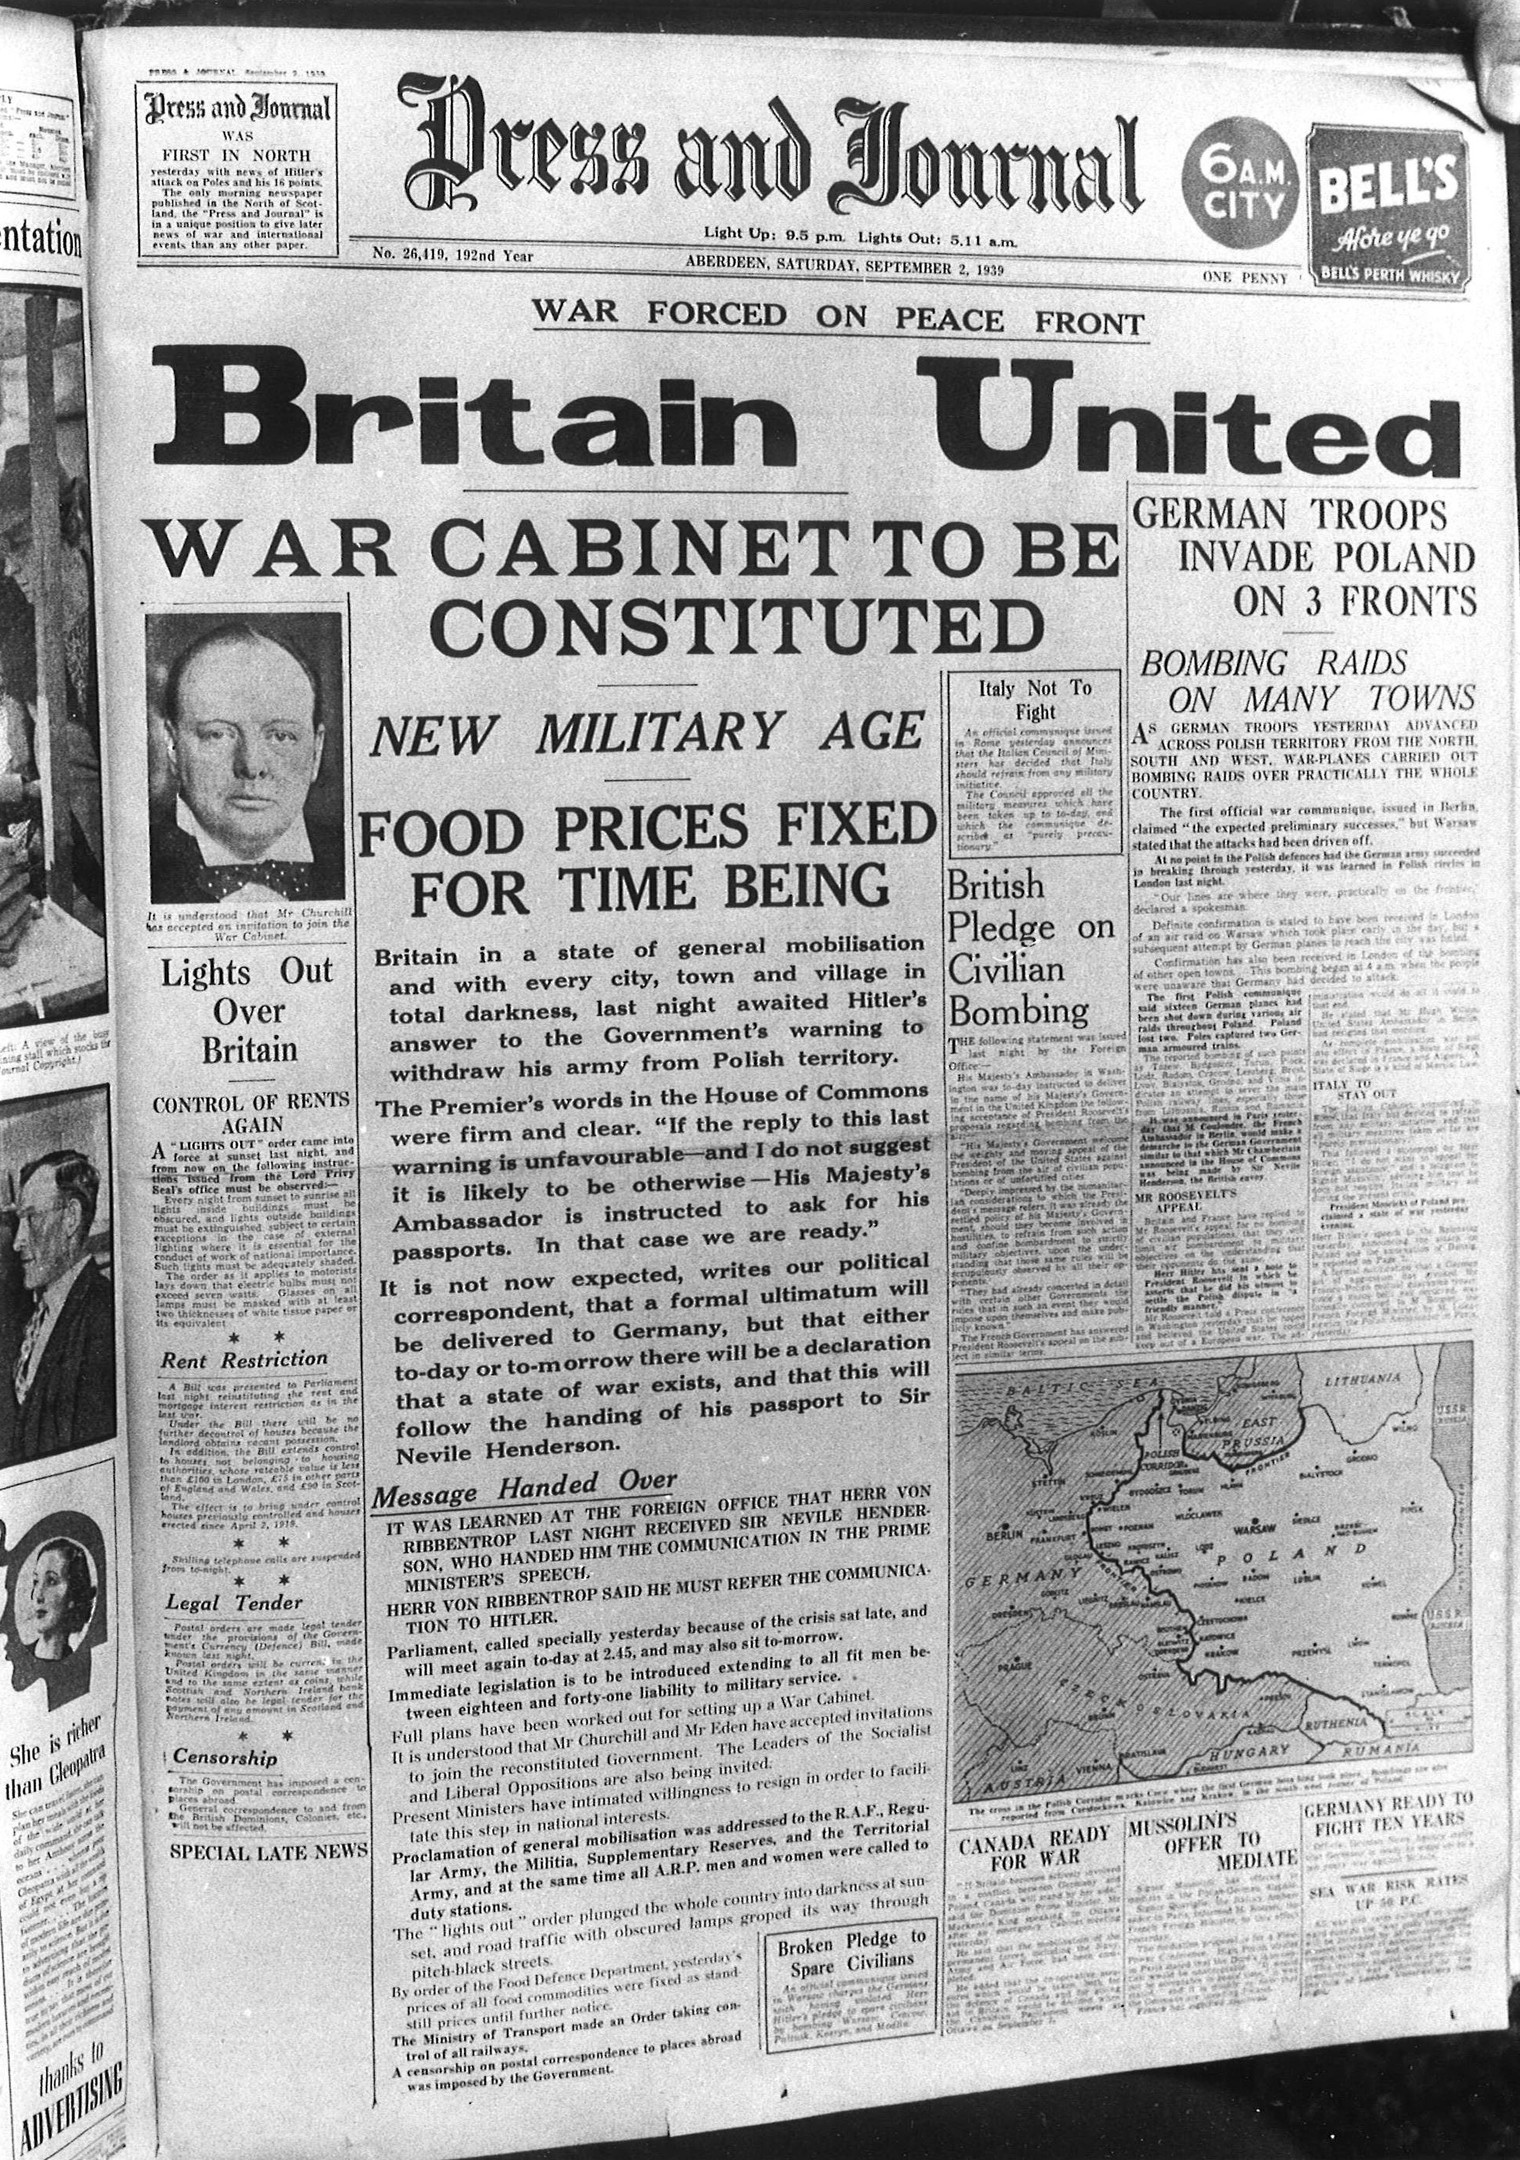 The Press and Journal, 2 September 1939